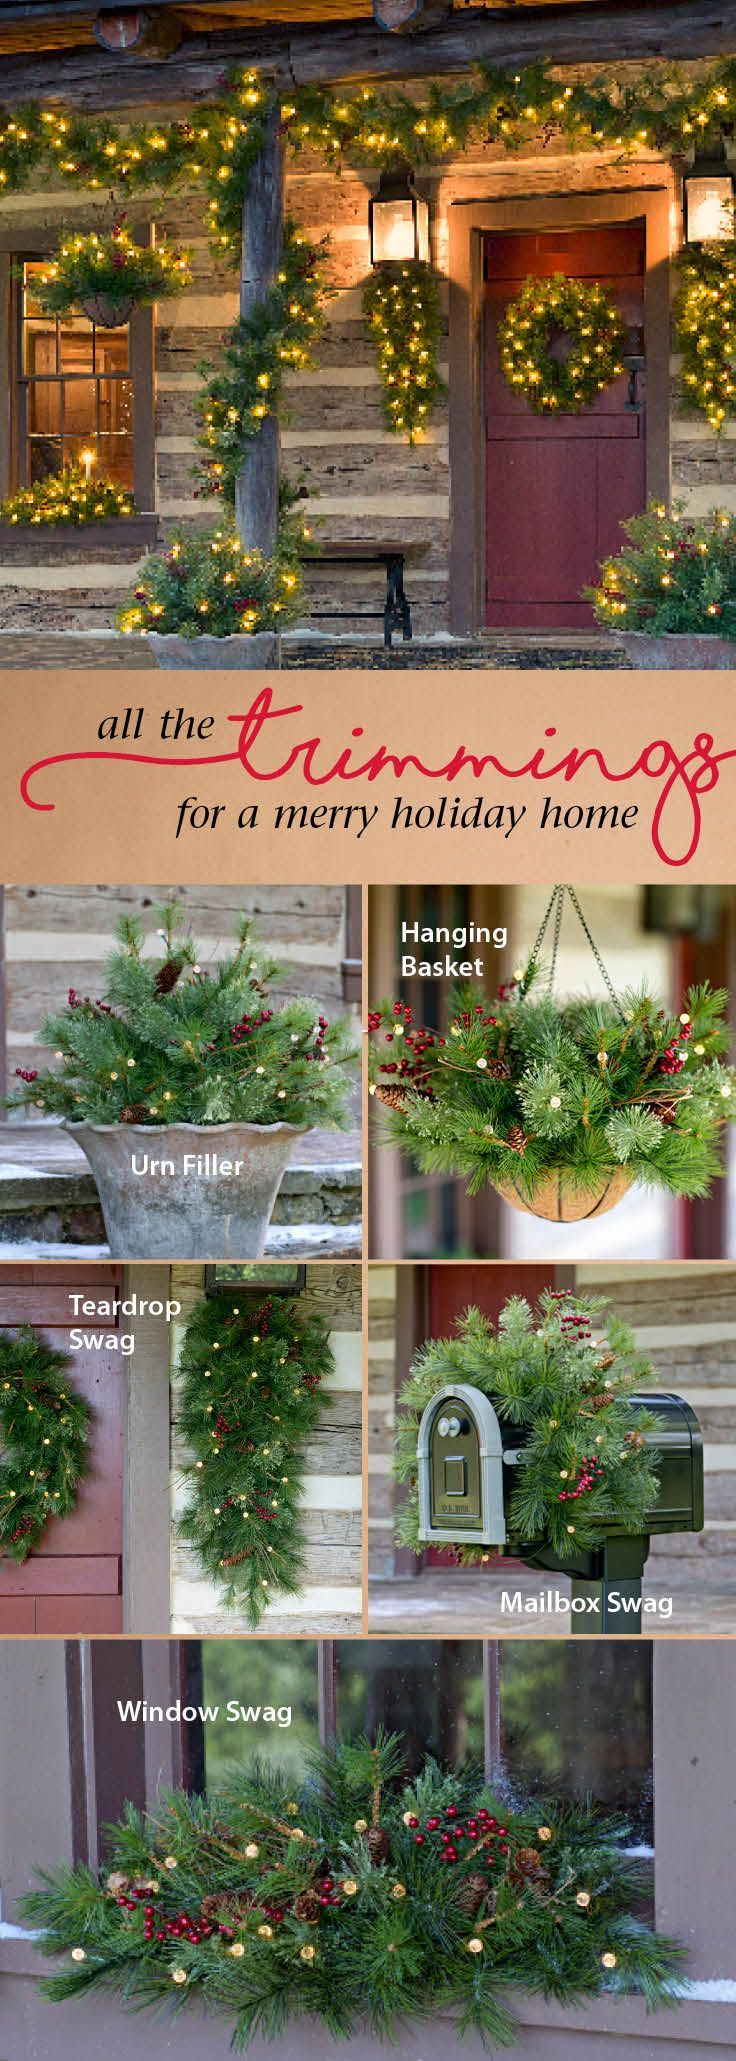 Best 25+ Deck the halls ideas on Pinterest | Traditional ...